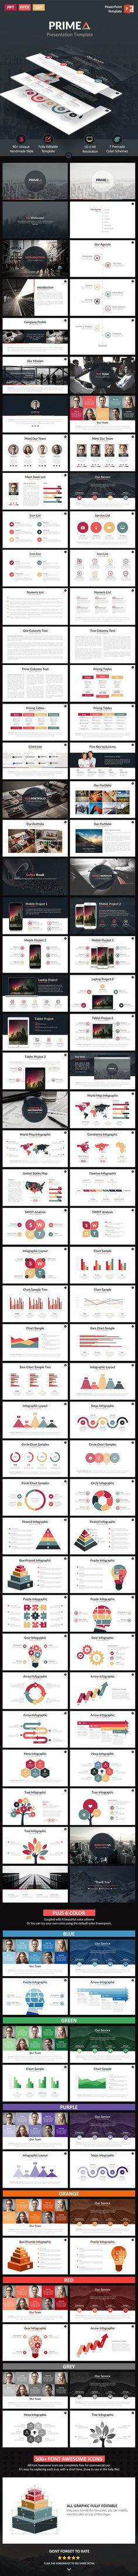 "Primea - PowerPoint Presentation Template <a class=""pintag"" href=""/explore/design"" title=""#design explore Pinterest"">#design</a> Download: <a href=""http://graphicriver.net/item/primea-powerpoint-presentation-template/11828976?ref=ksioks"" rel=""nofollow"" target=""_blank"">graphicriver.net/...</a>"